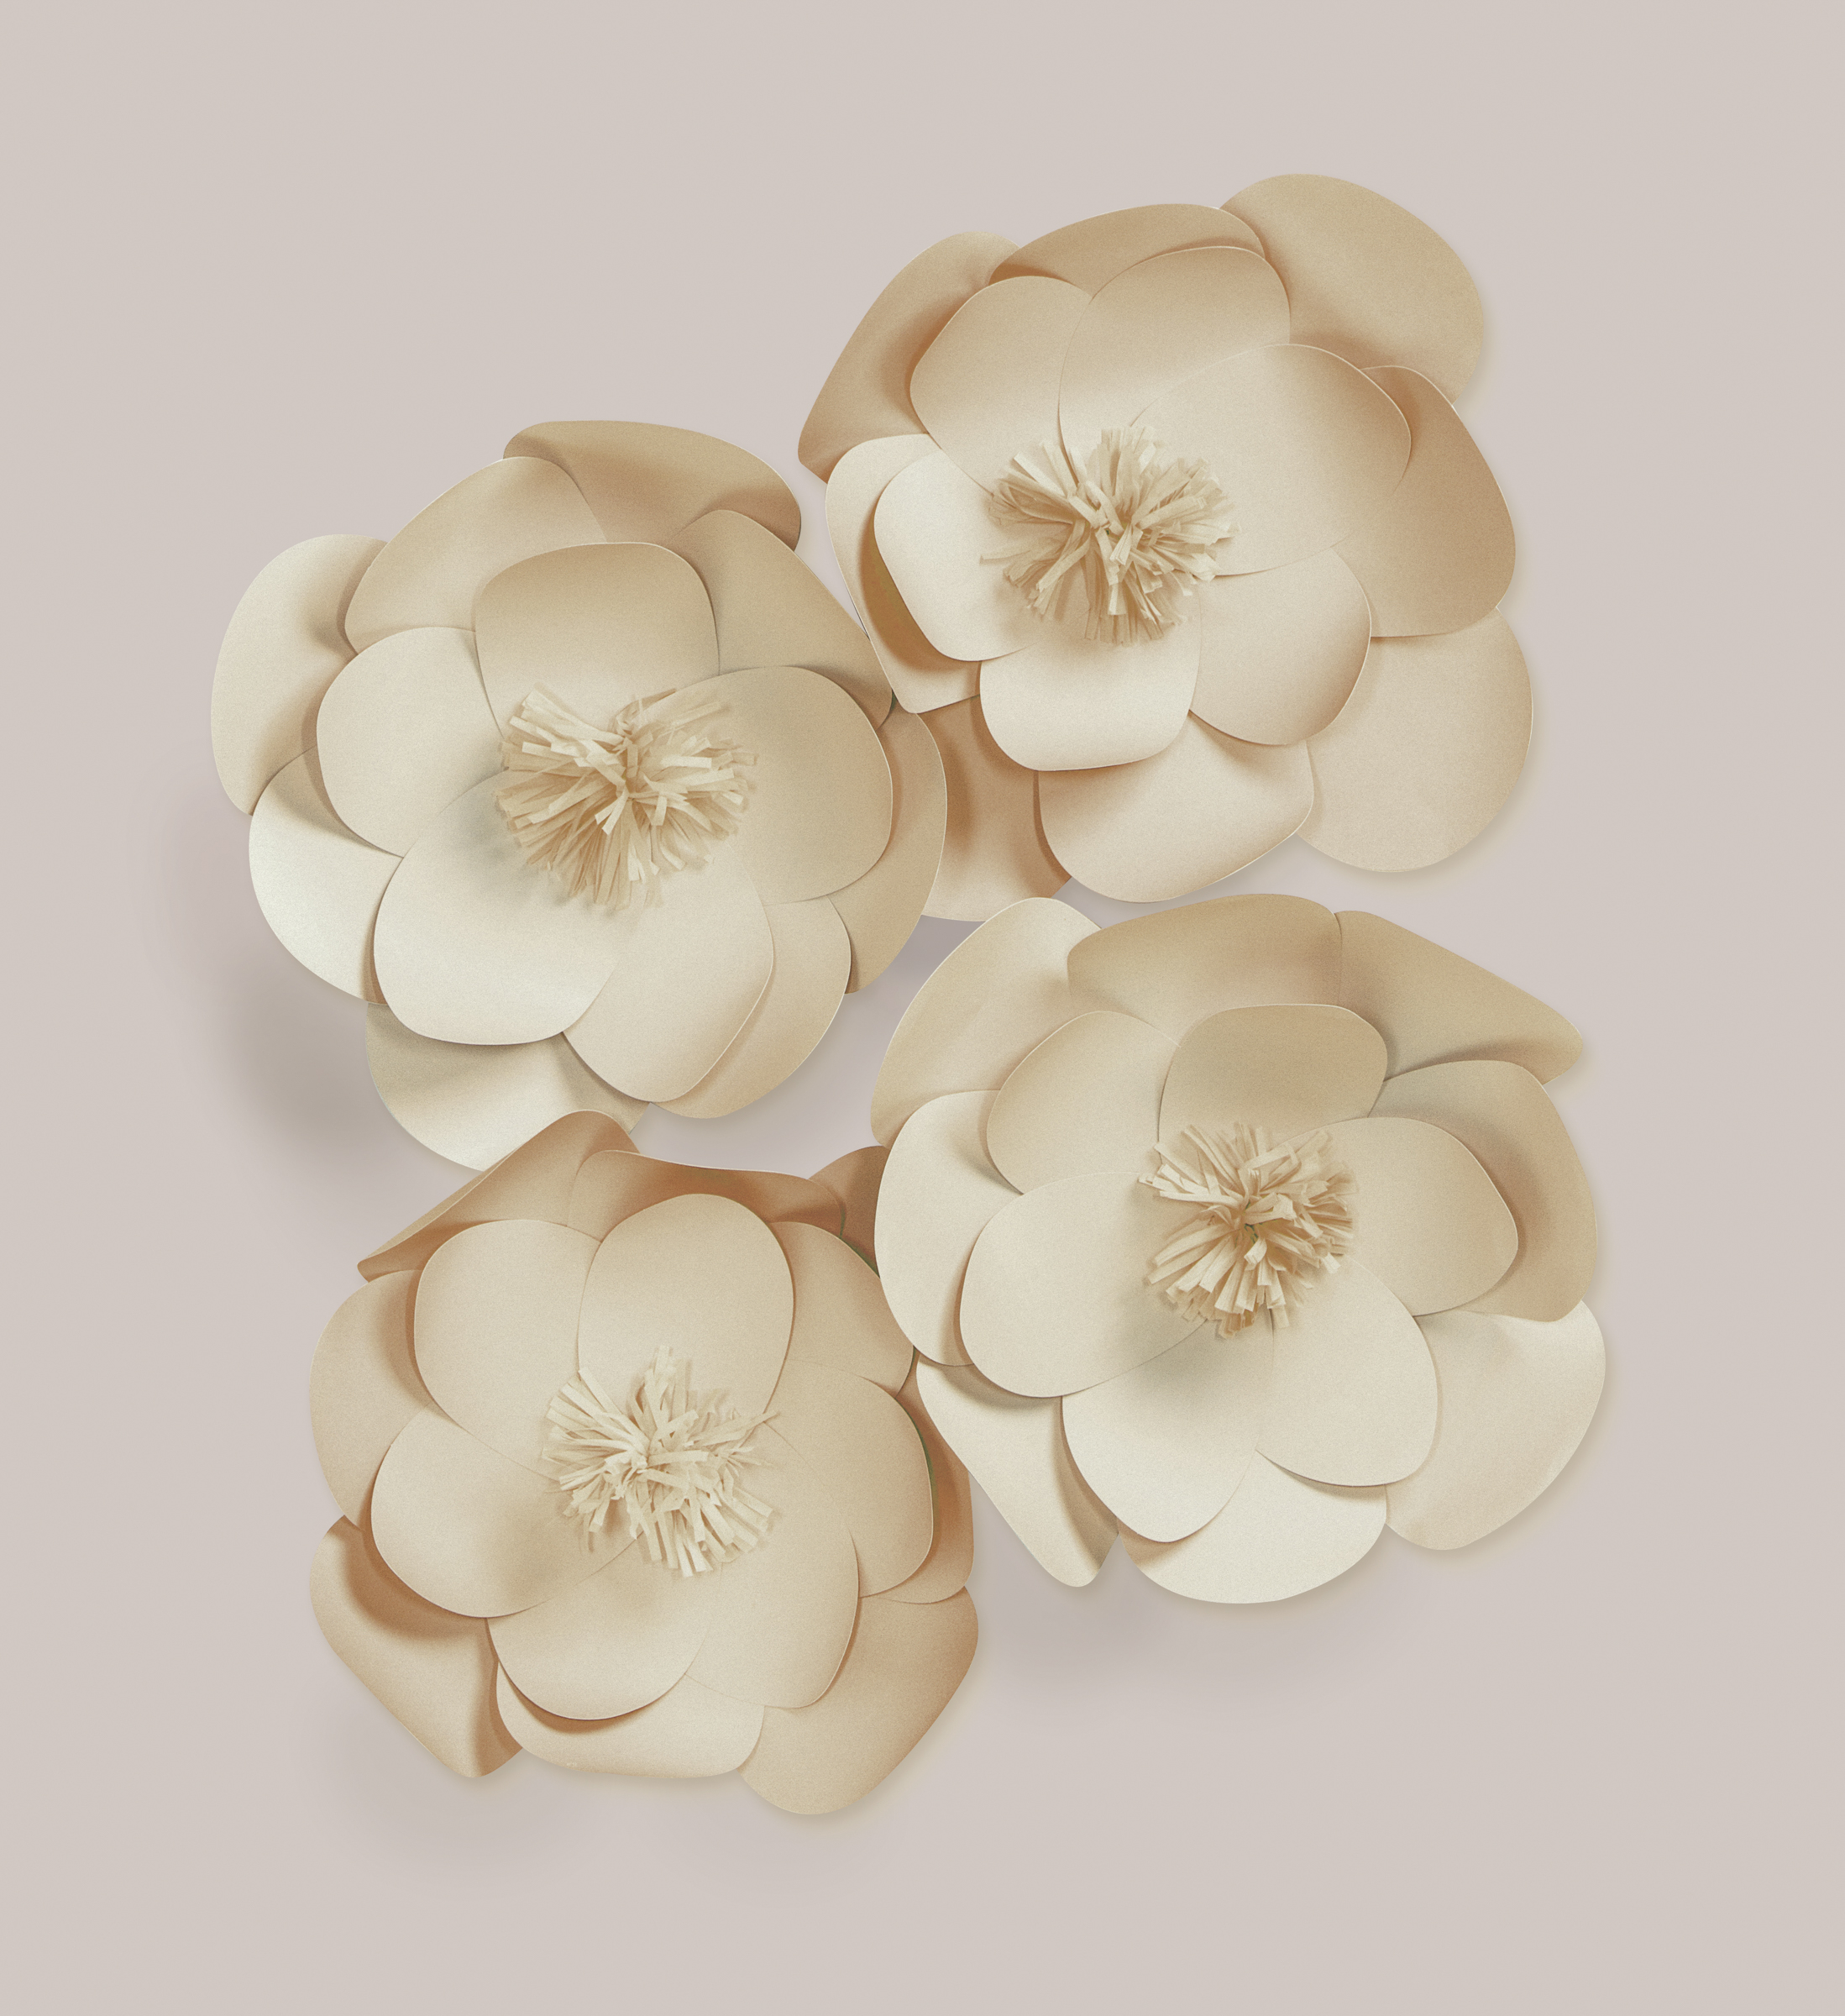 Darice Natural Paper Flower Wall Decor Kit, Assorted Sizes, 4Ct Pertaining To Flower Wall Decor (Gallery 18 of 30)